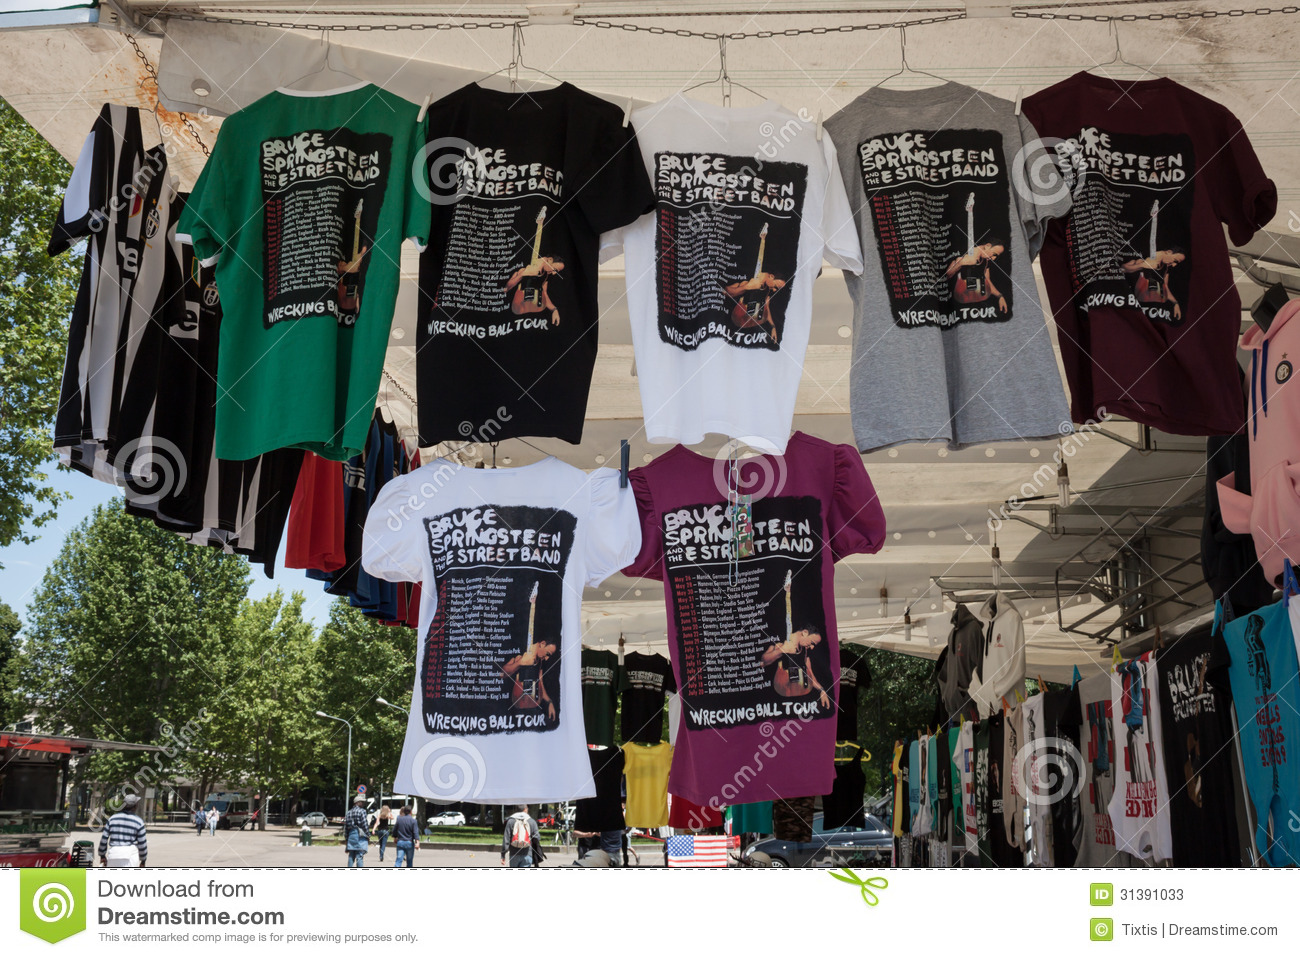 T-shirt da excursão 2013 do mundo de Springsteen